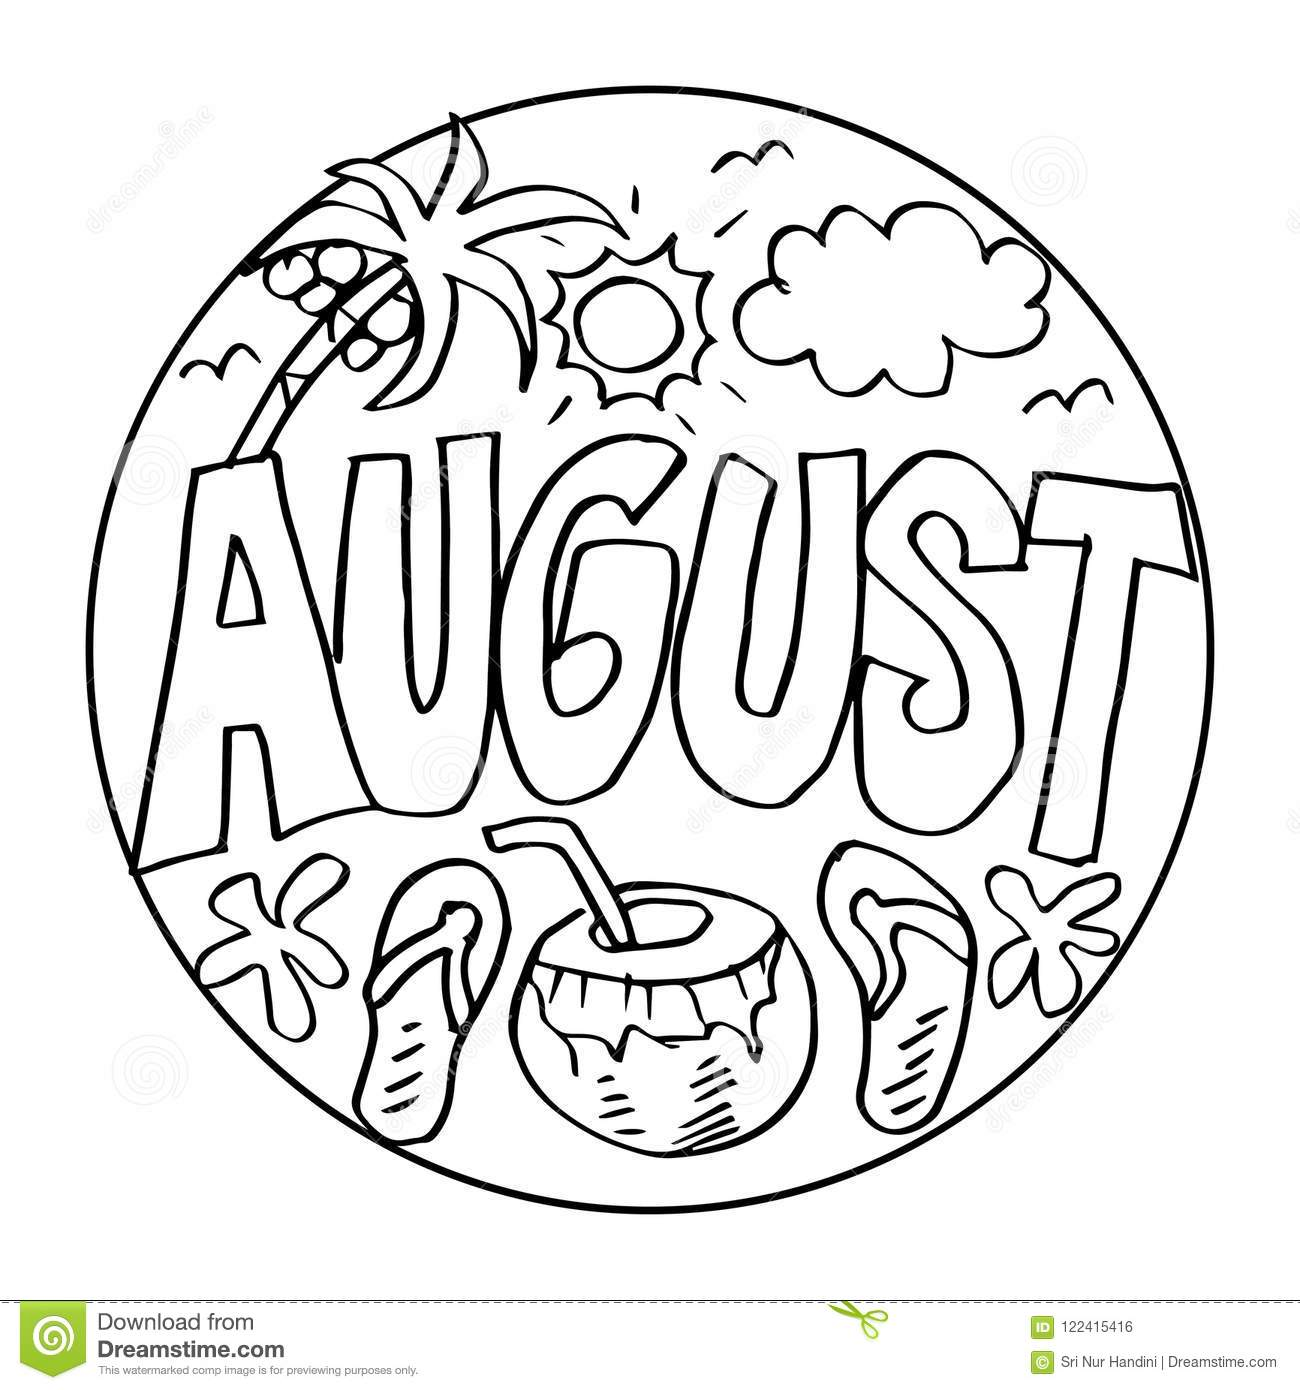 August coloring pages for kids stock illustration illustration of